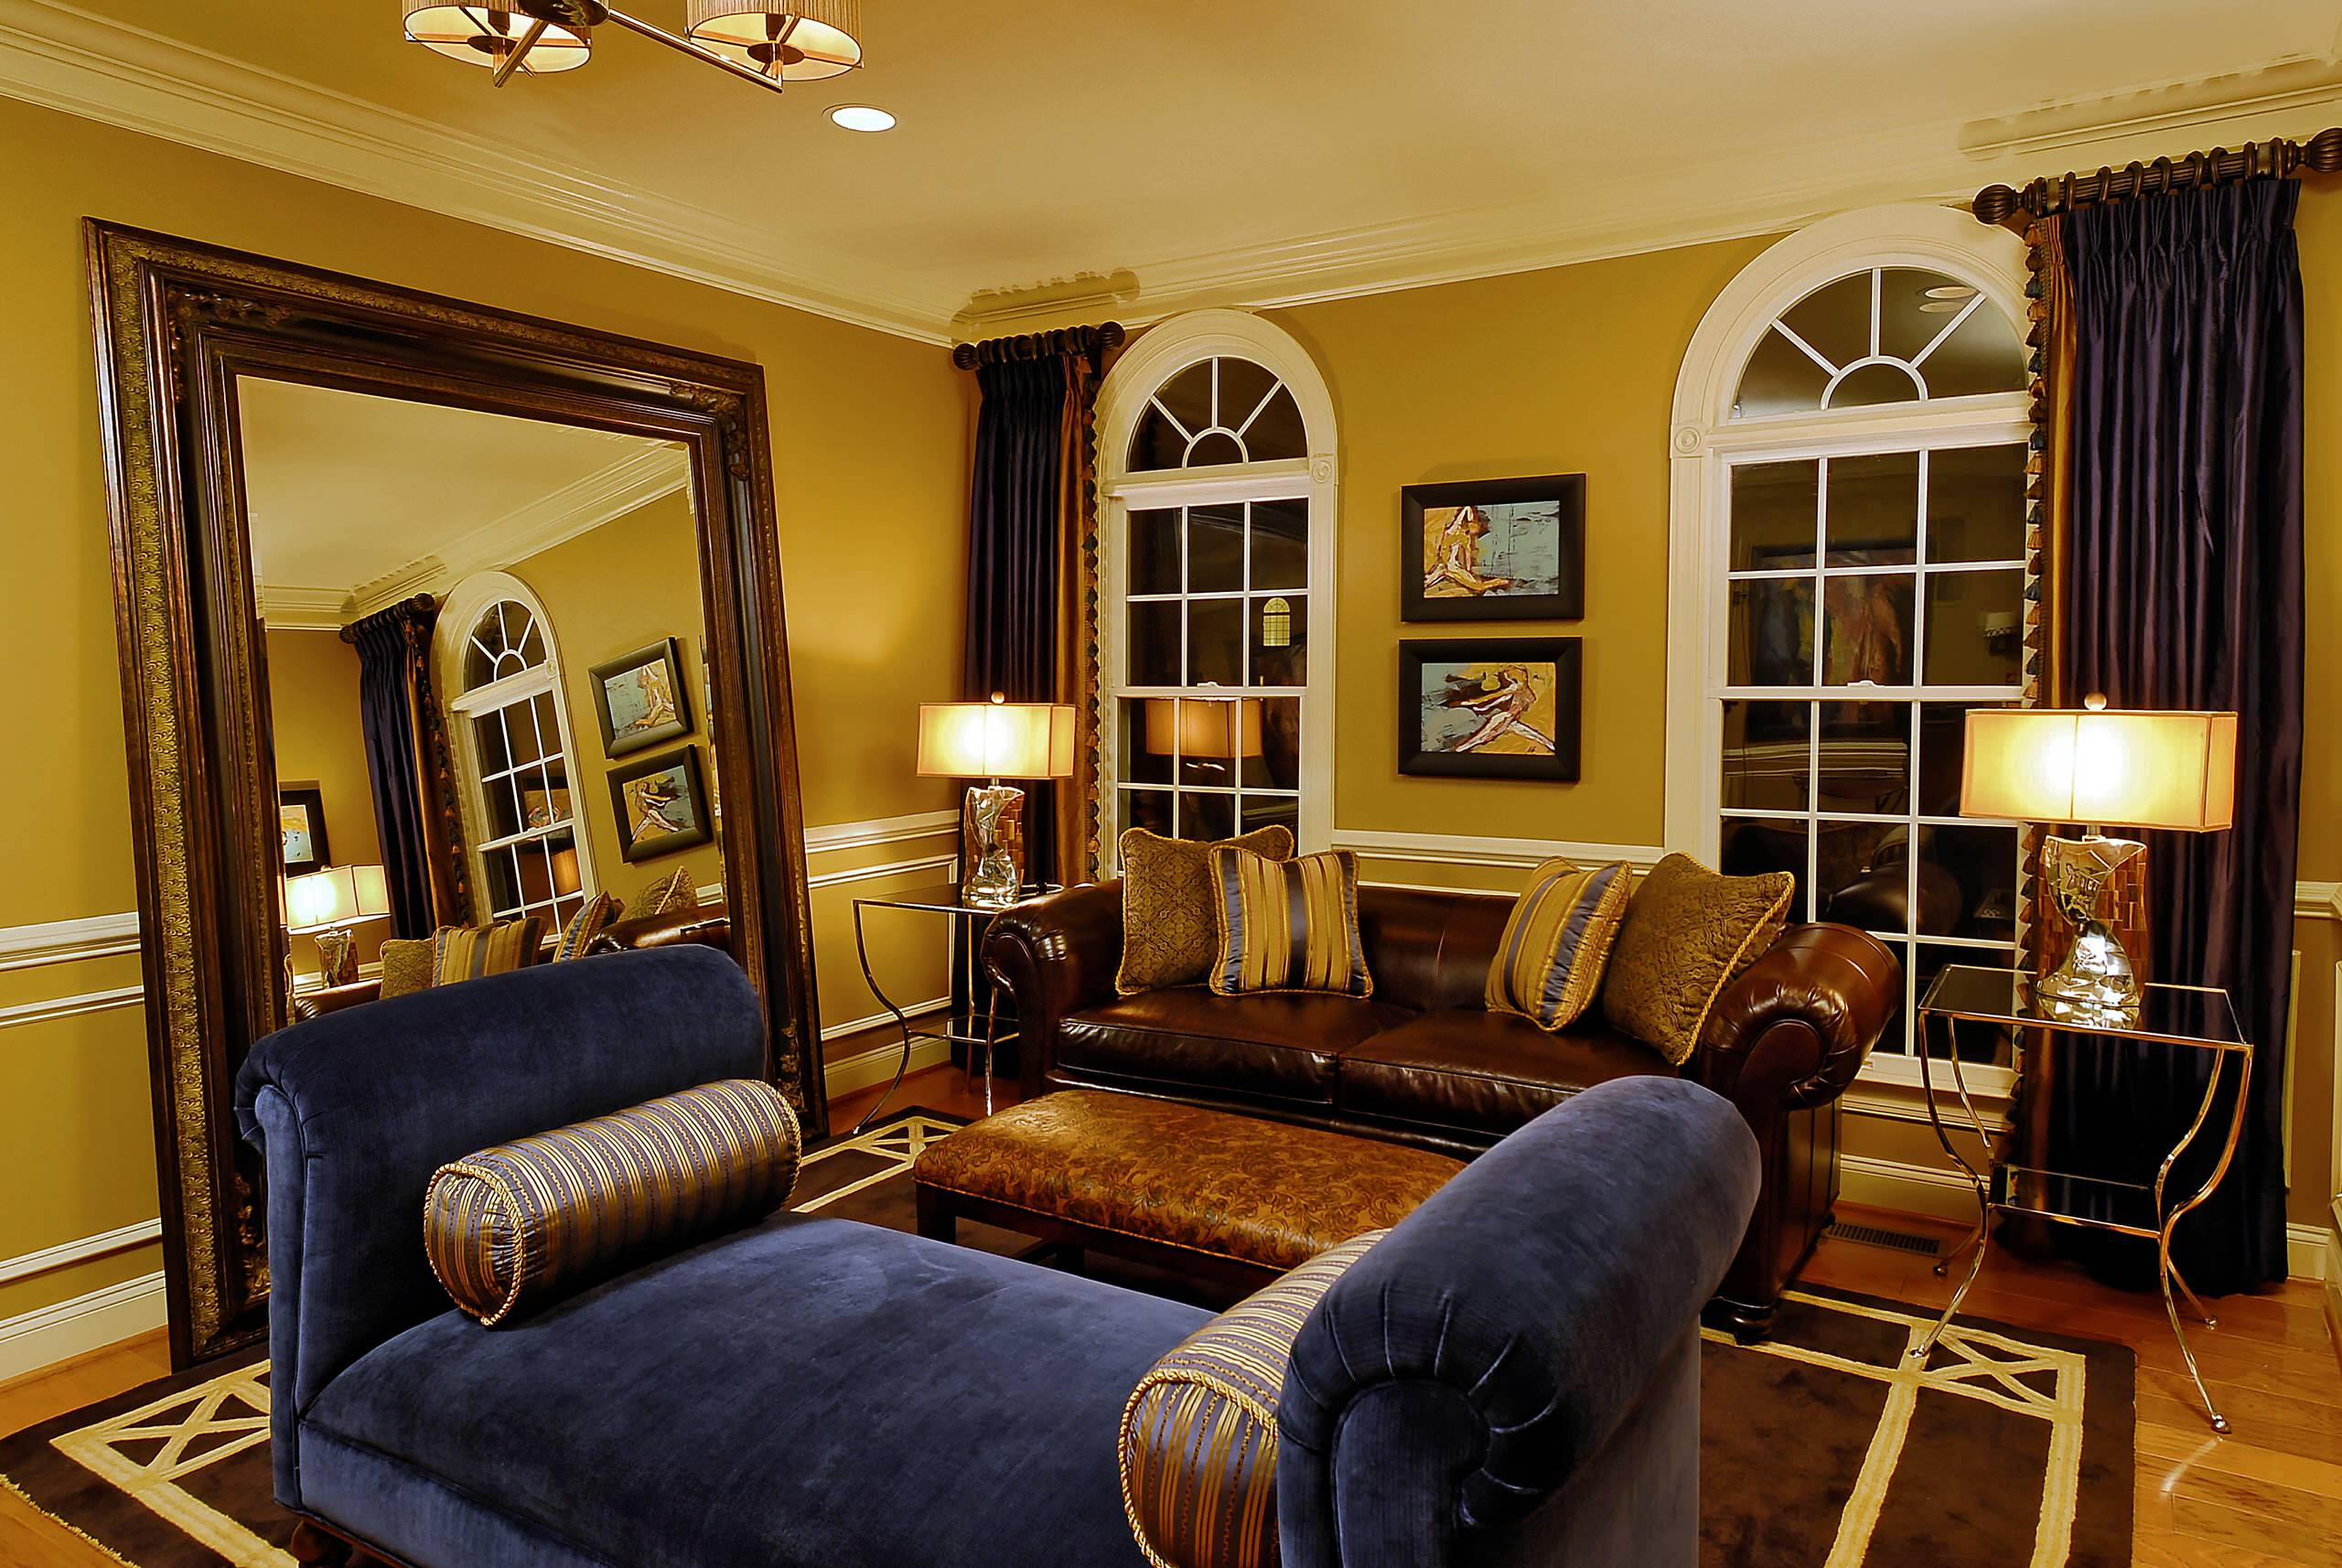 75 Yellow Living Room Ideas You Ll Love, Yellow Living Room Ideas